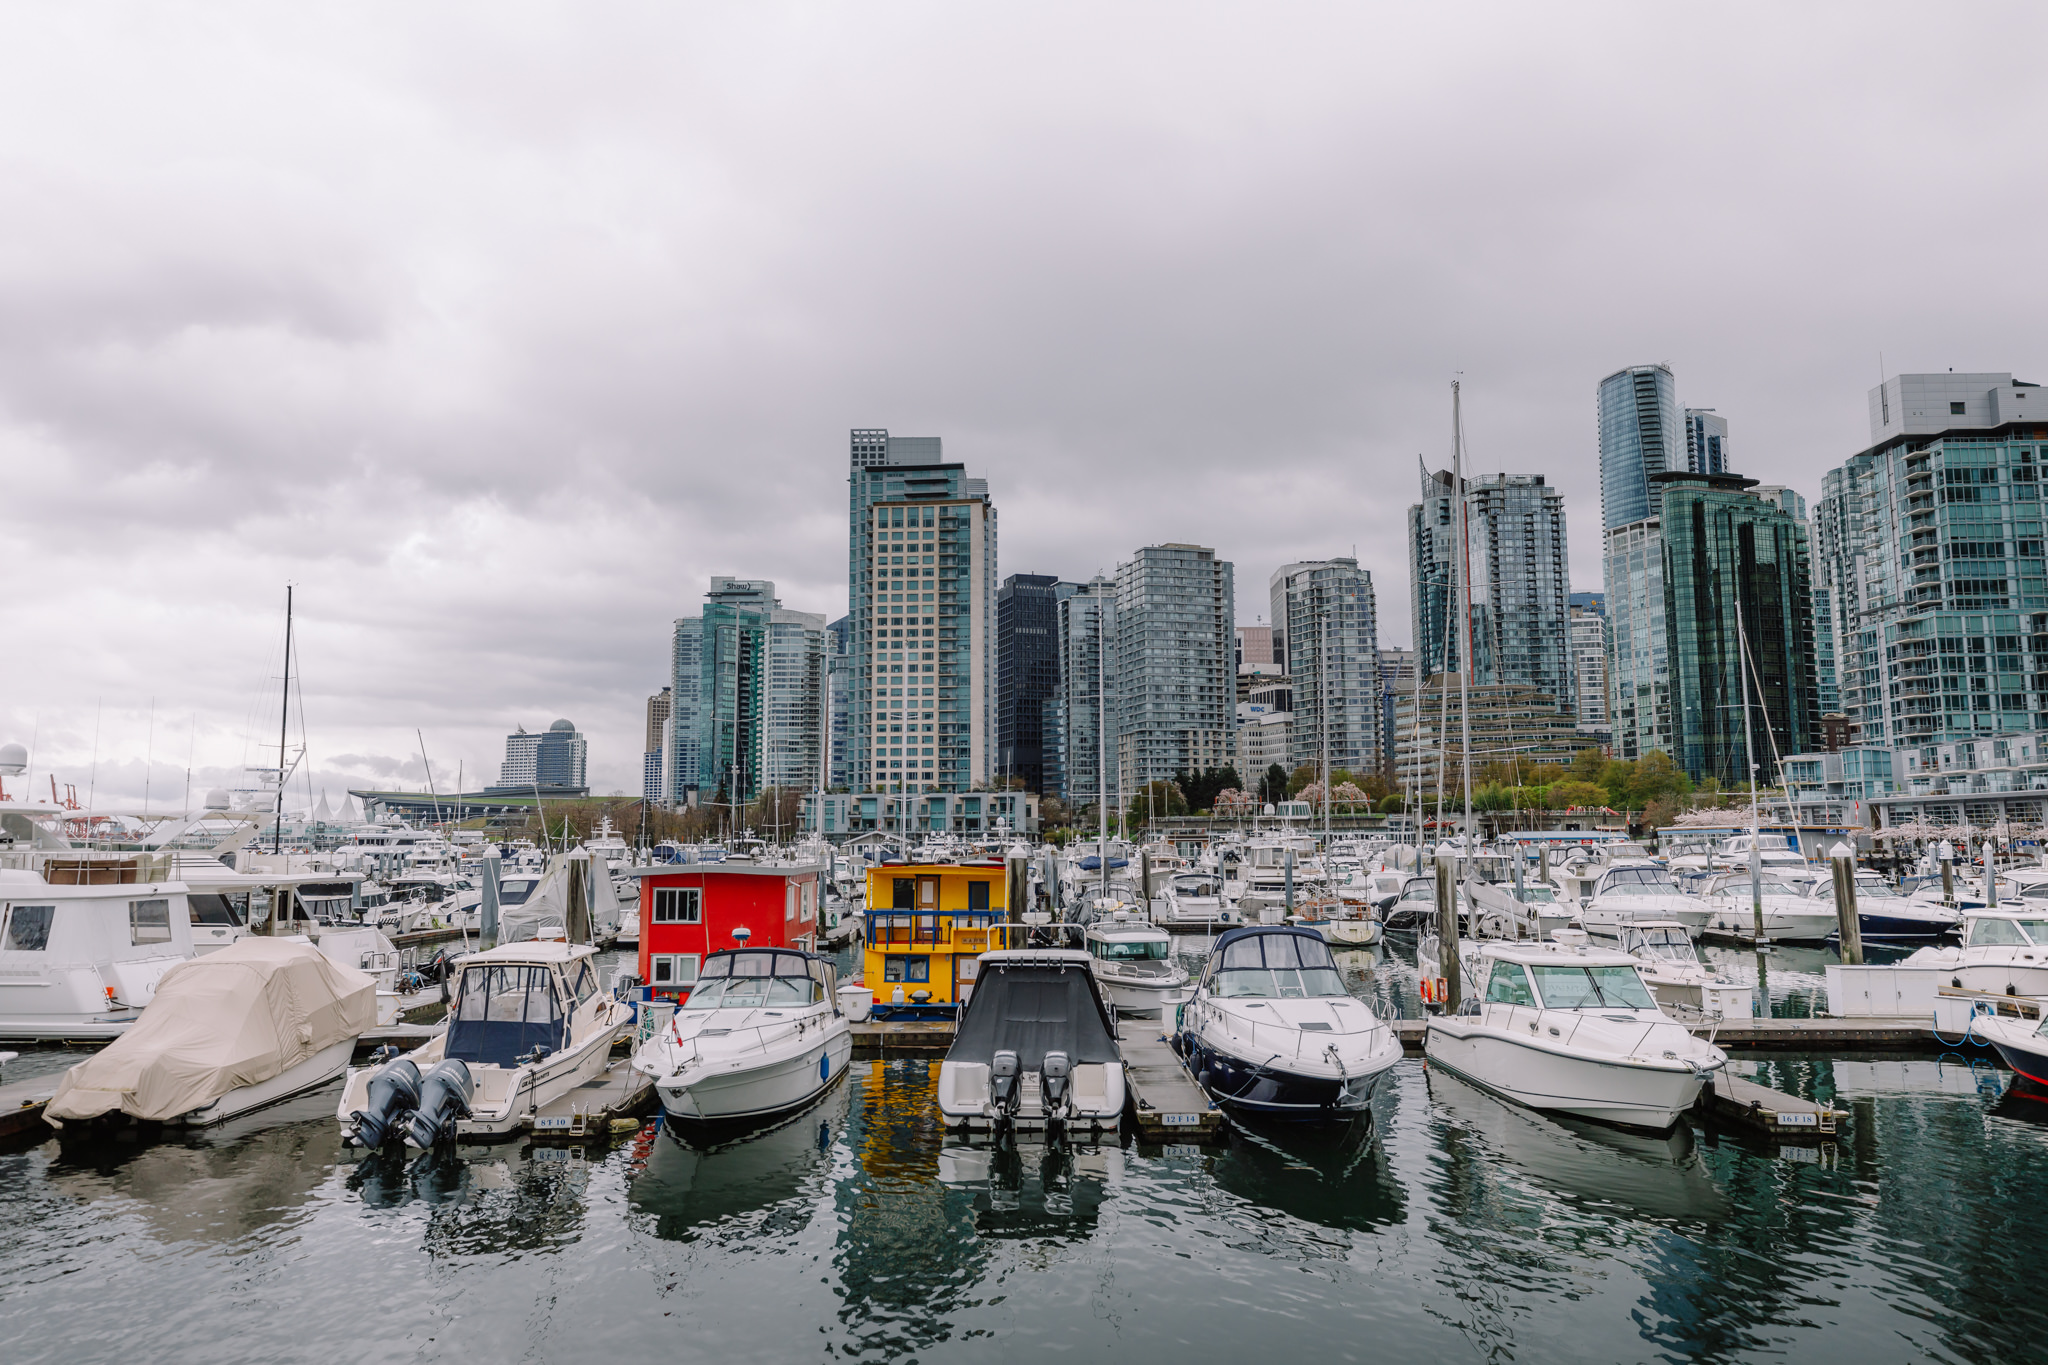 Vancouver on a grey day with colourful houseboats